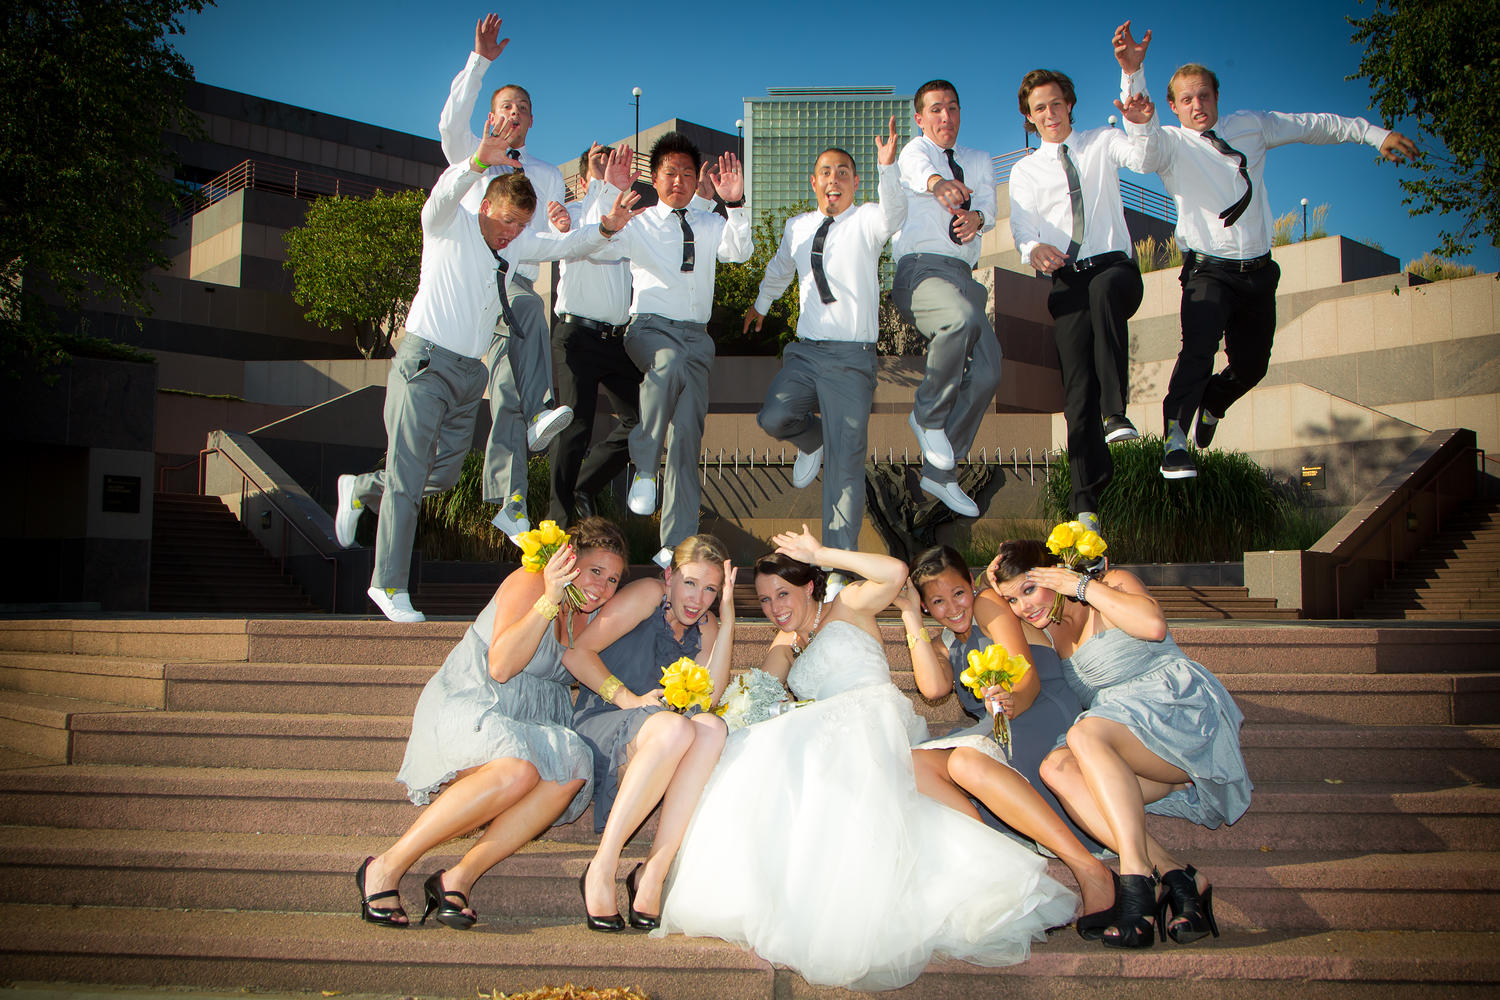 Ashley & Julian's Wedding 7.6.12